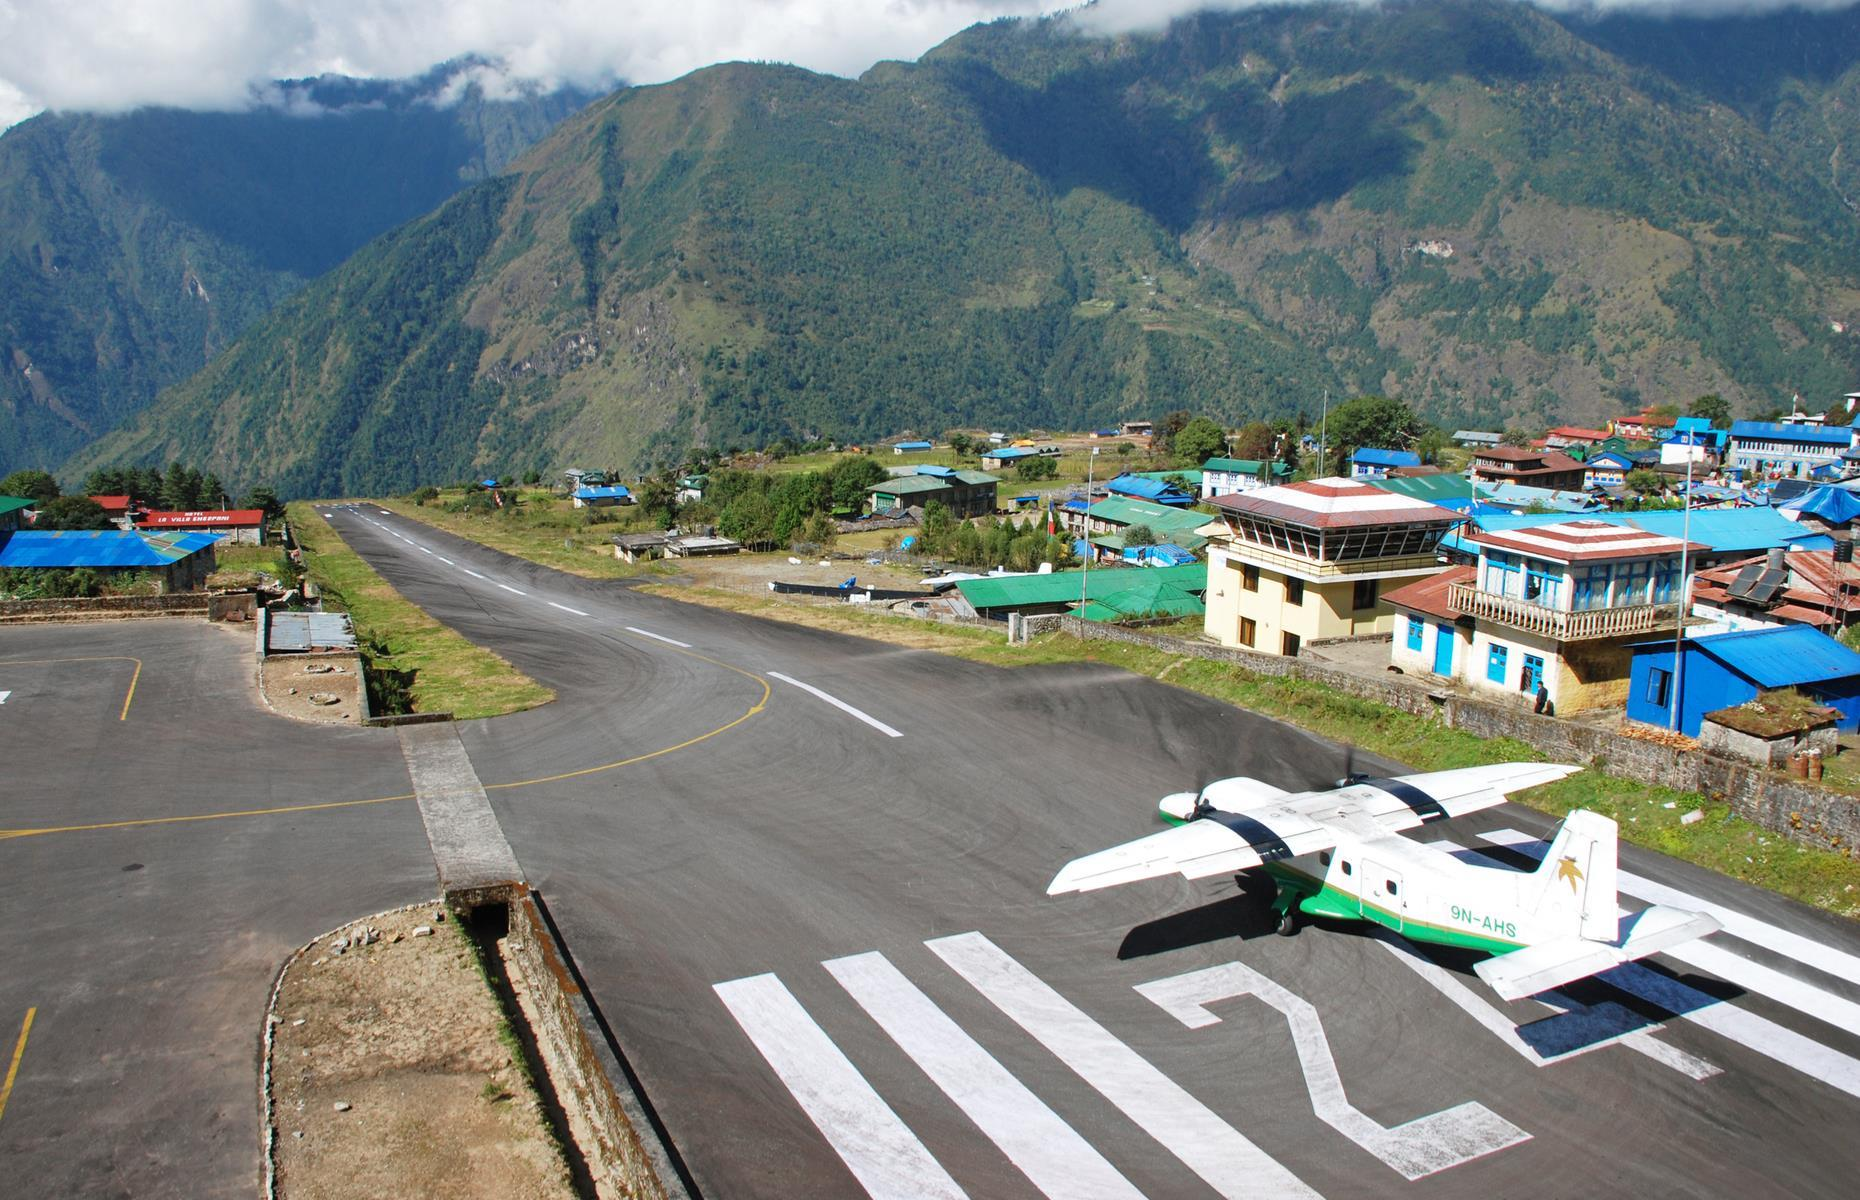 Slide 31 of 31: Needless to say, it's not a journey for the faint-hearted, with a mountain at one end of the runway and a 1,000-foot (304m) sheer drop at the other. Taking off isn't any less hairy: the runway is only 1,729 feet (527m) long. Sometimes, this unique airport has to close briefly during the morning due to strong southwest winds which whip around the area. Now take a look at the world's best airports you've never heard of